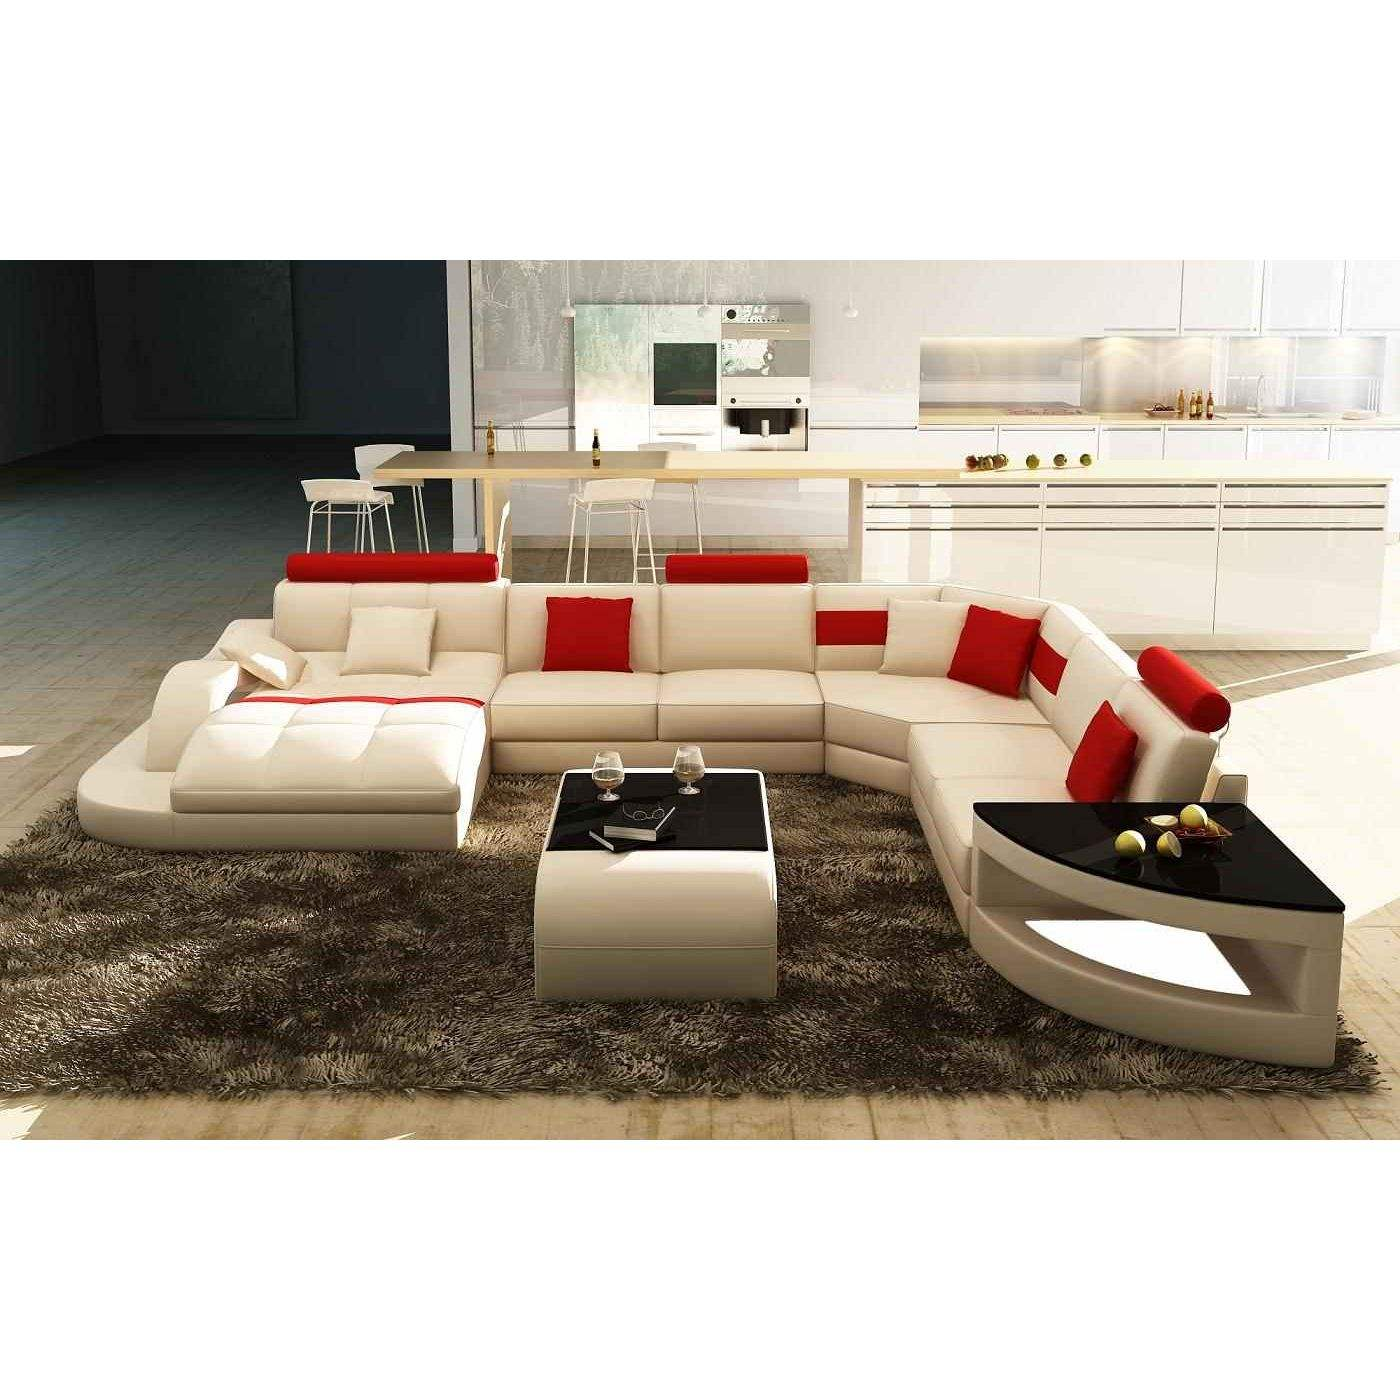 Deco in paris canape d angle design panoramique blanc et rouge istanbul pan - Canape angle cuir design ...